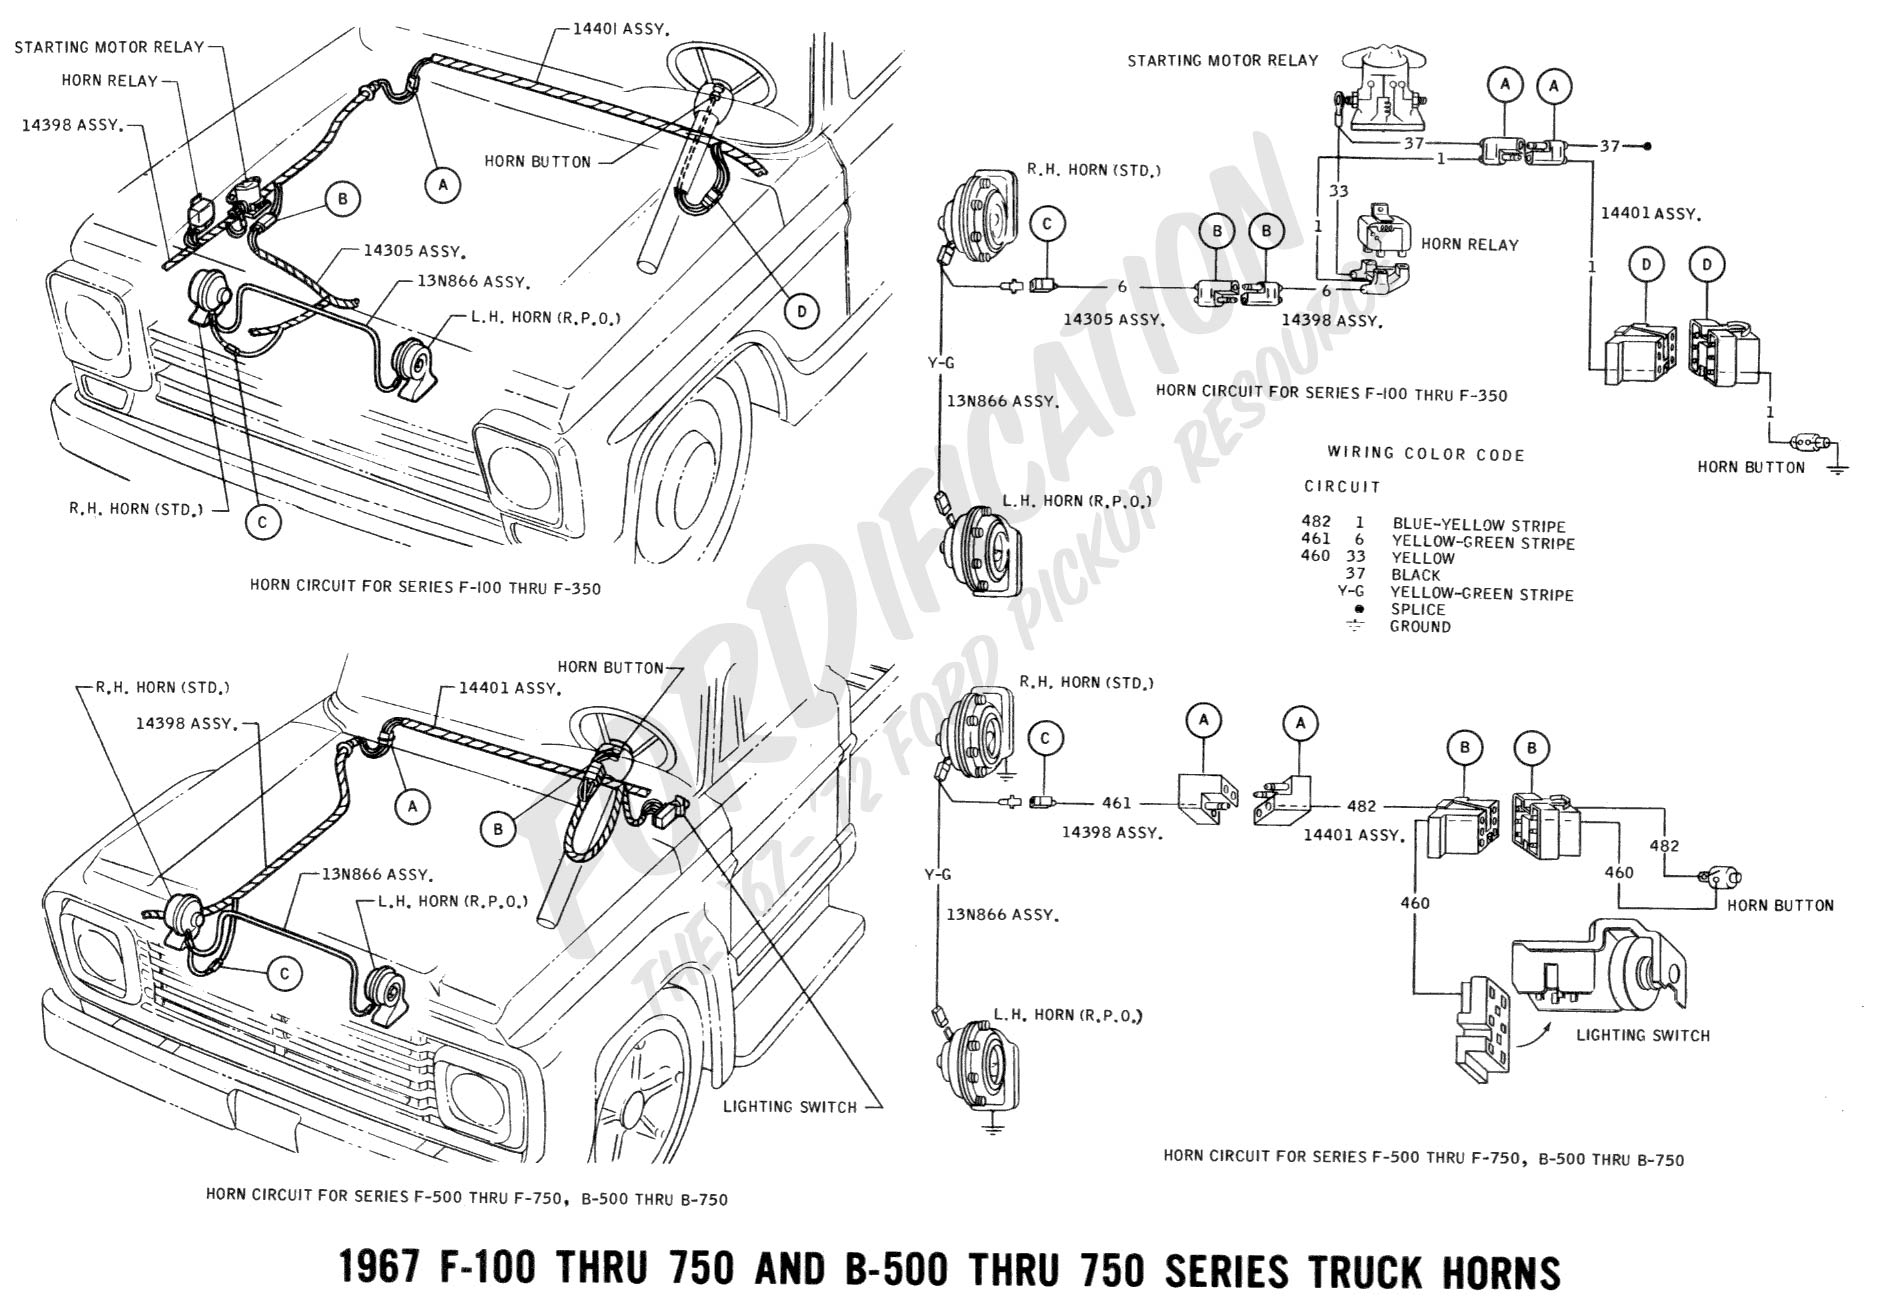 Master Wiring Diagram 68 Mustang Fuse Diagrams Circuit 1967 Ford Truck Technical Drawings And Schematics Section H Rh Fordification Com